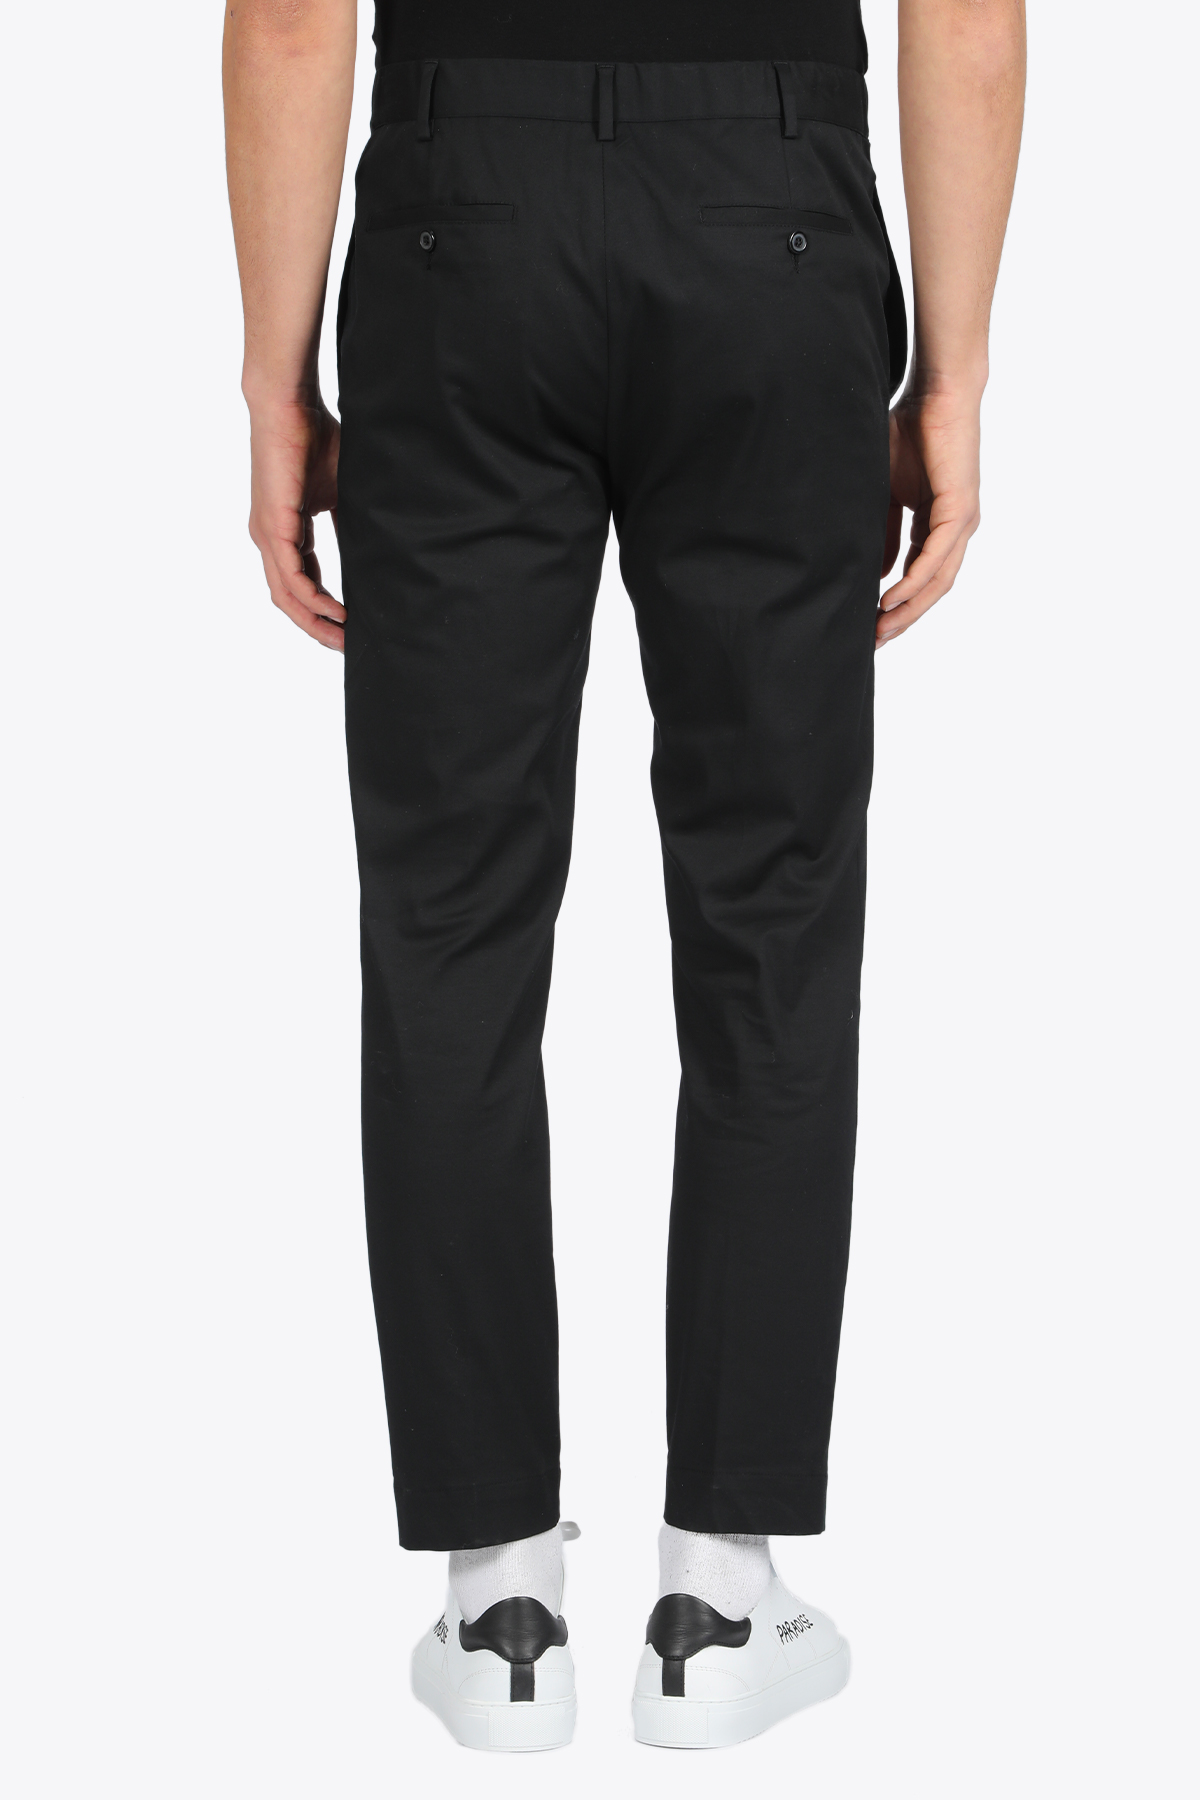 Skinny fit cotton pant GRIFONI   9   GG140011/40 PANTALONE COULISSE003